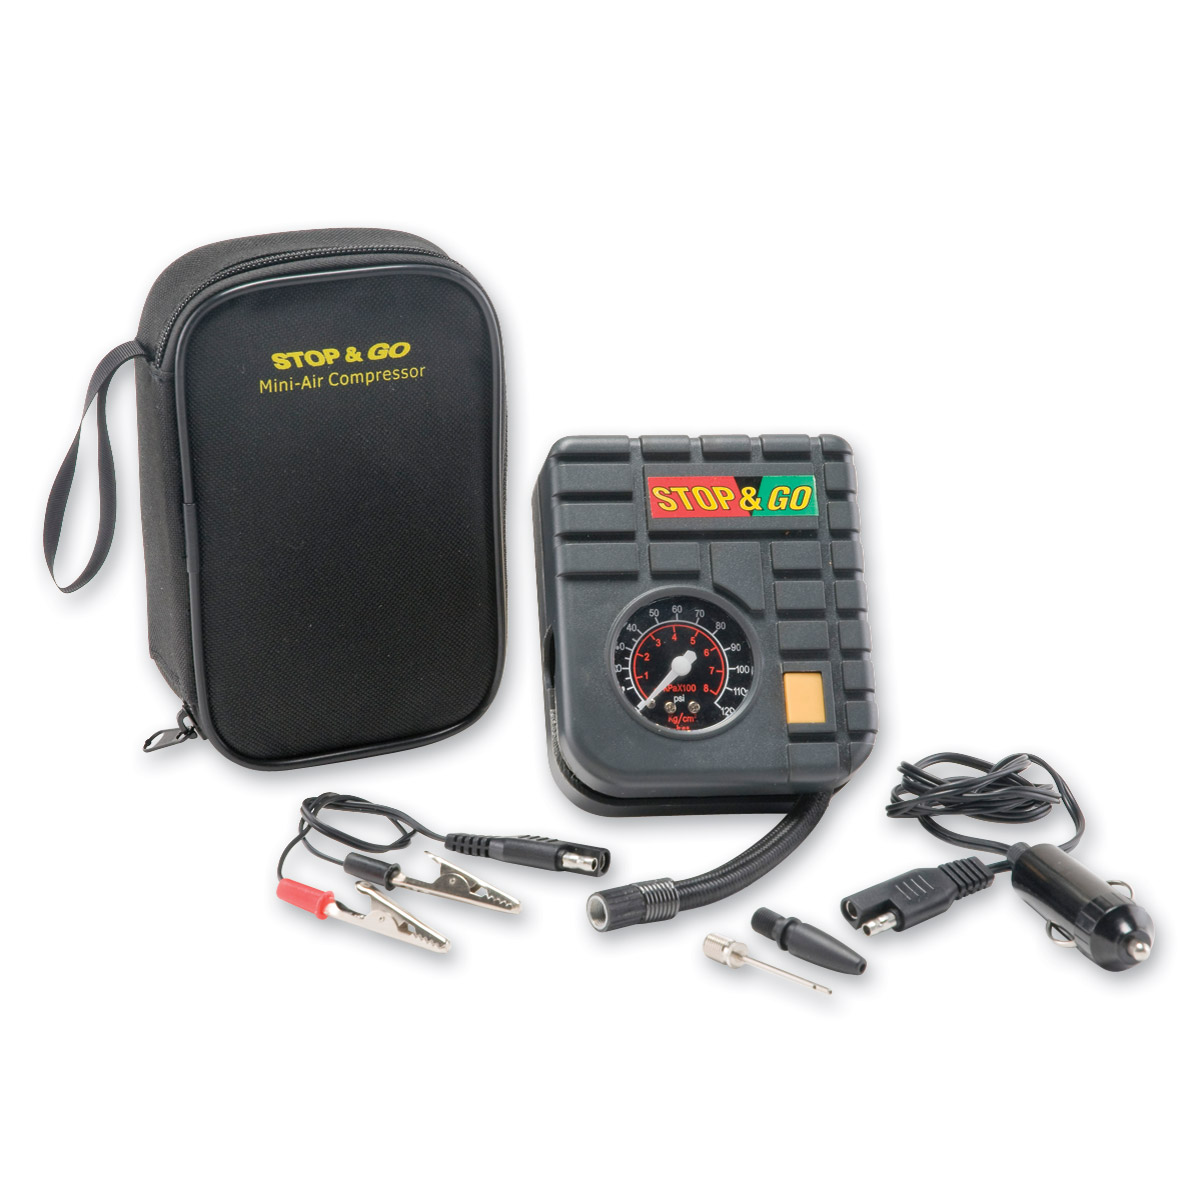 Stop & Go Mini Air Compressor